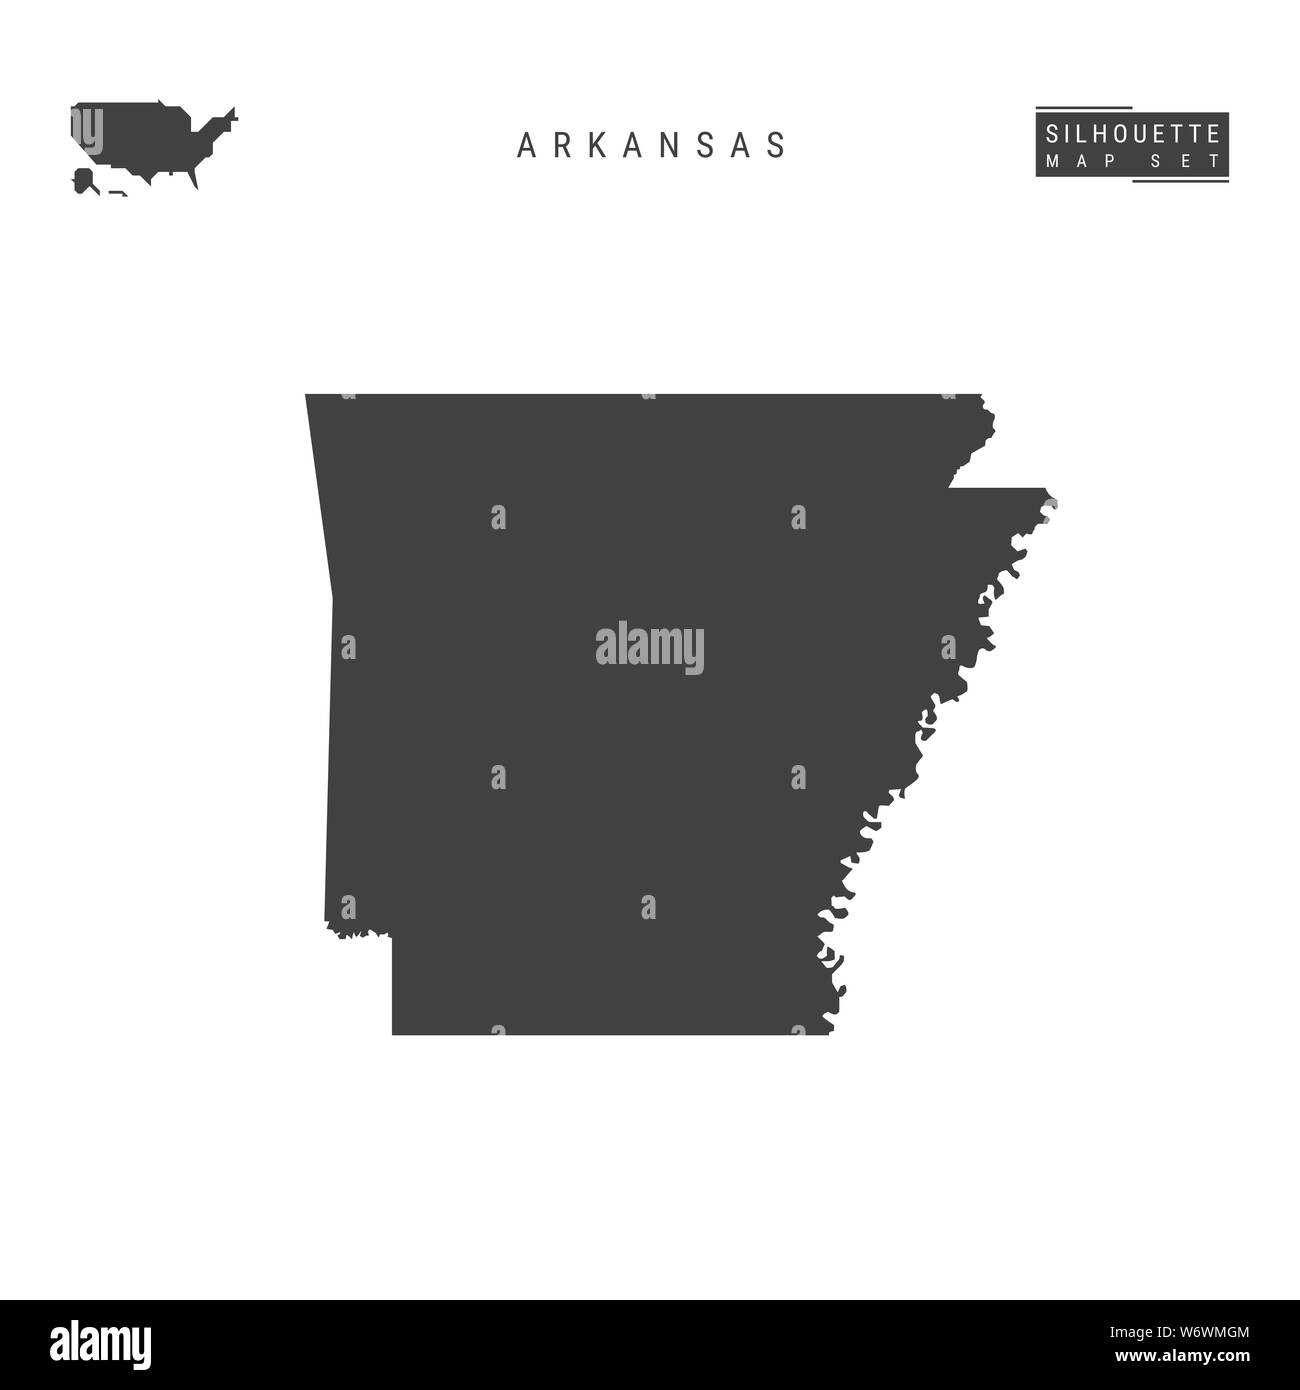 Image of: Arkansas Us State Blank Map Isolated On White Background High Detailed Black Silhouette Map Of Arkansas Stock Photo Alamy